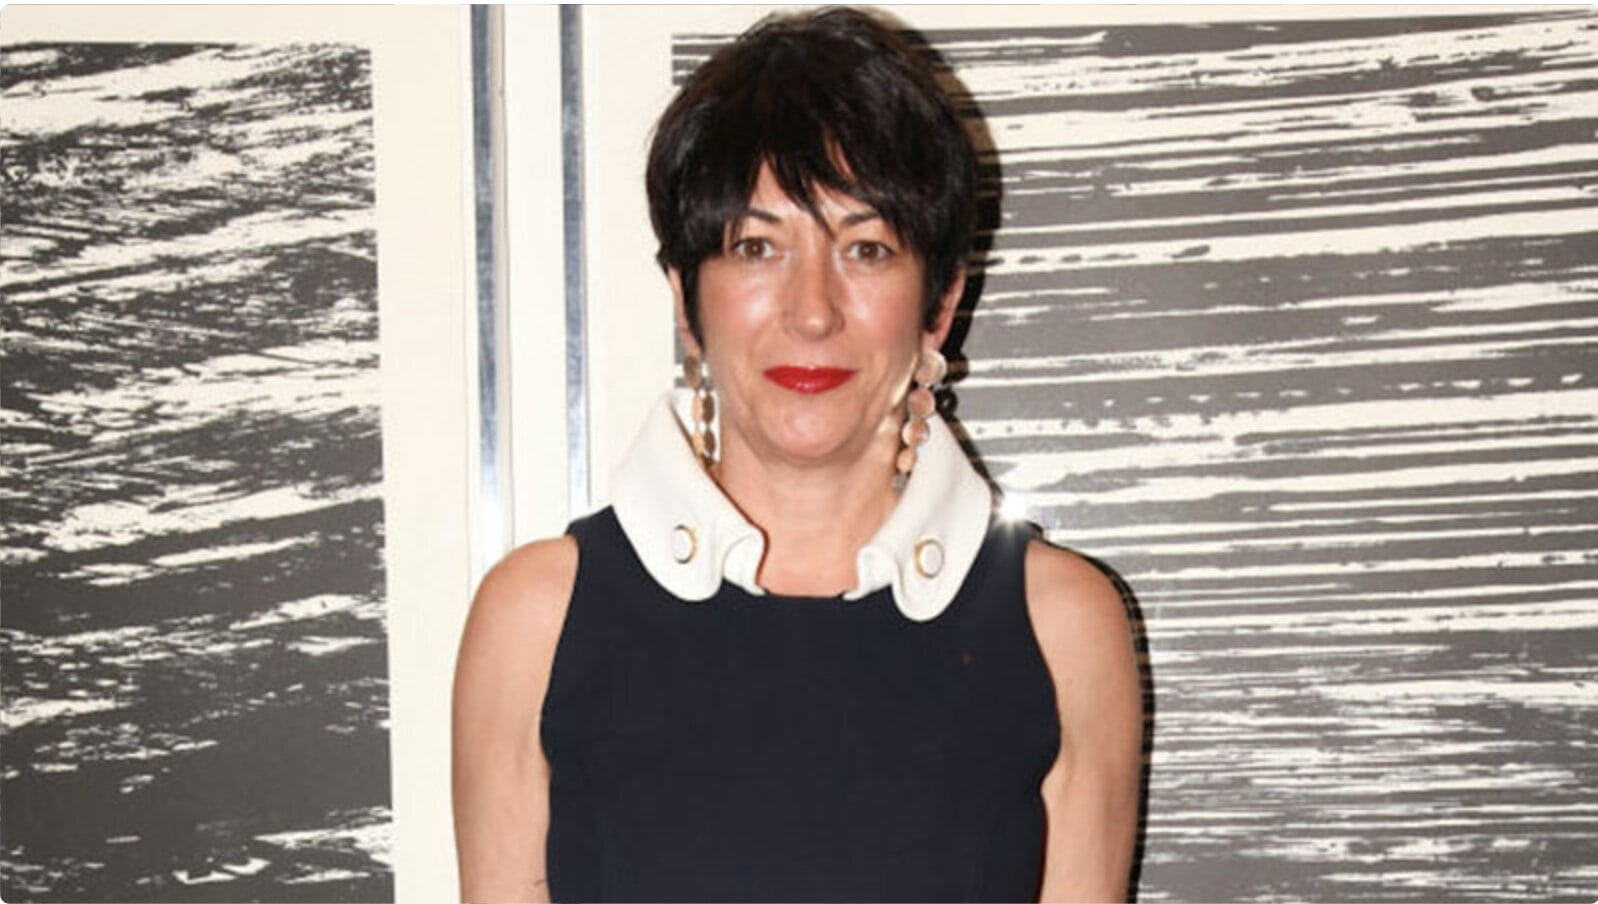 Report: Ghislaine Maxwell Once Attended Anti Sex-Trafficking Fundraiser in New York